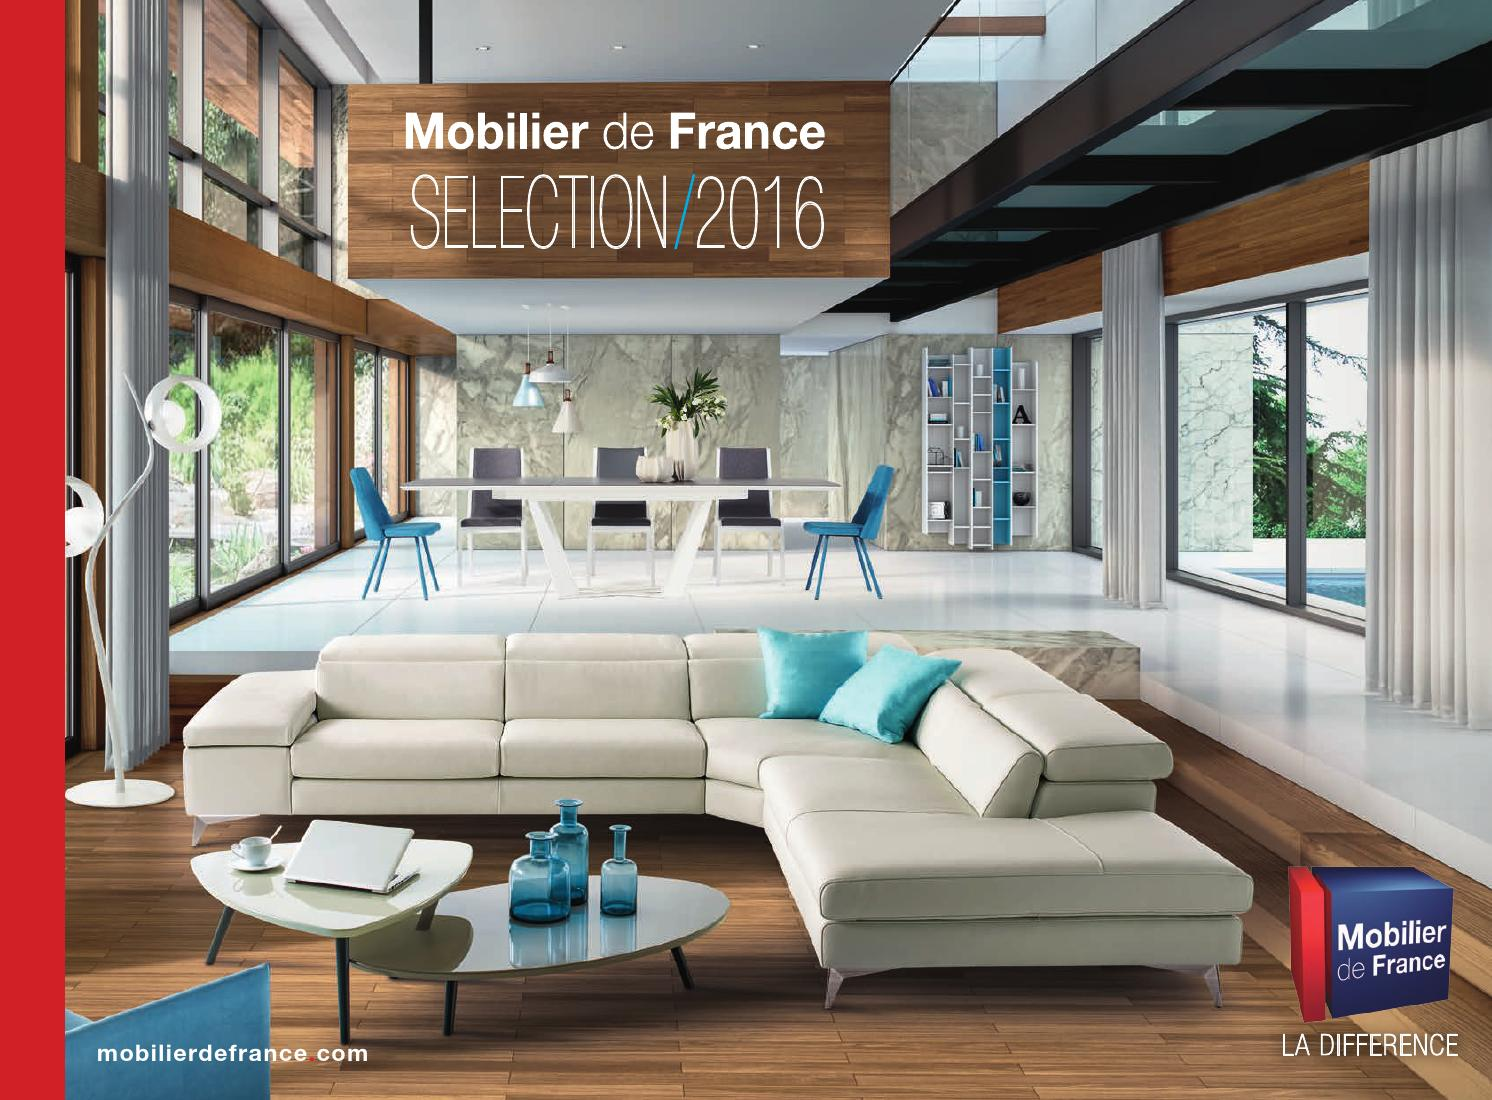 Mobilier France Catalogue Mobilier De France 2011 By Guilbert Geoffroy Issuu